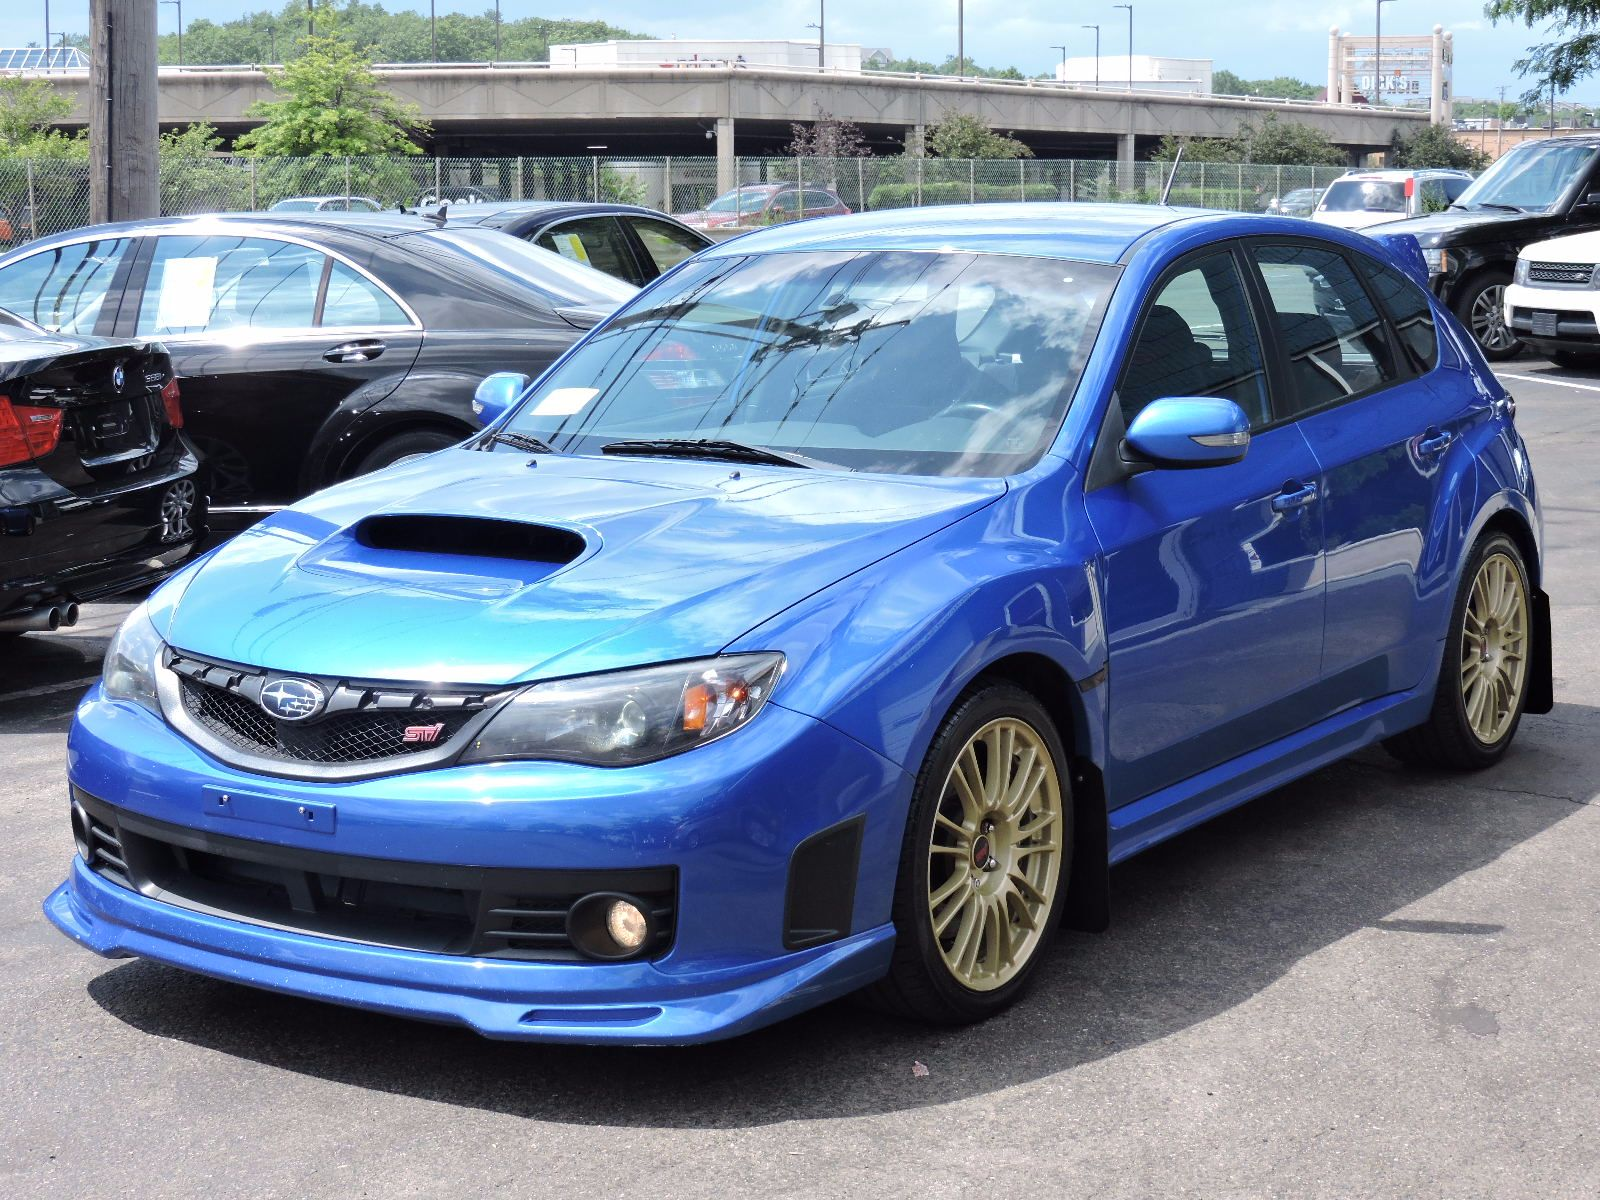 Subaru All Wheel Drive >> Used 2010 Subaru Impreza WRX WRX STI at Saugus Auto Mall